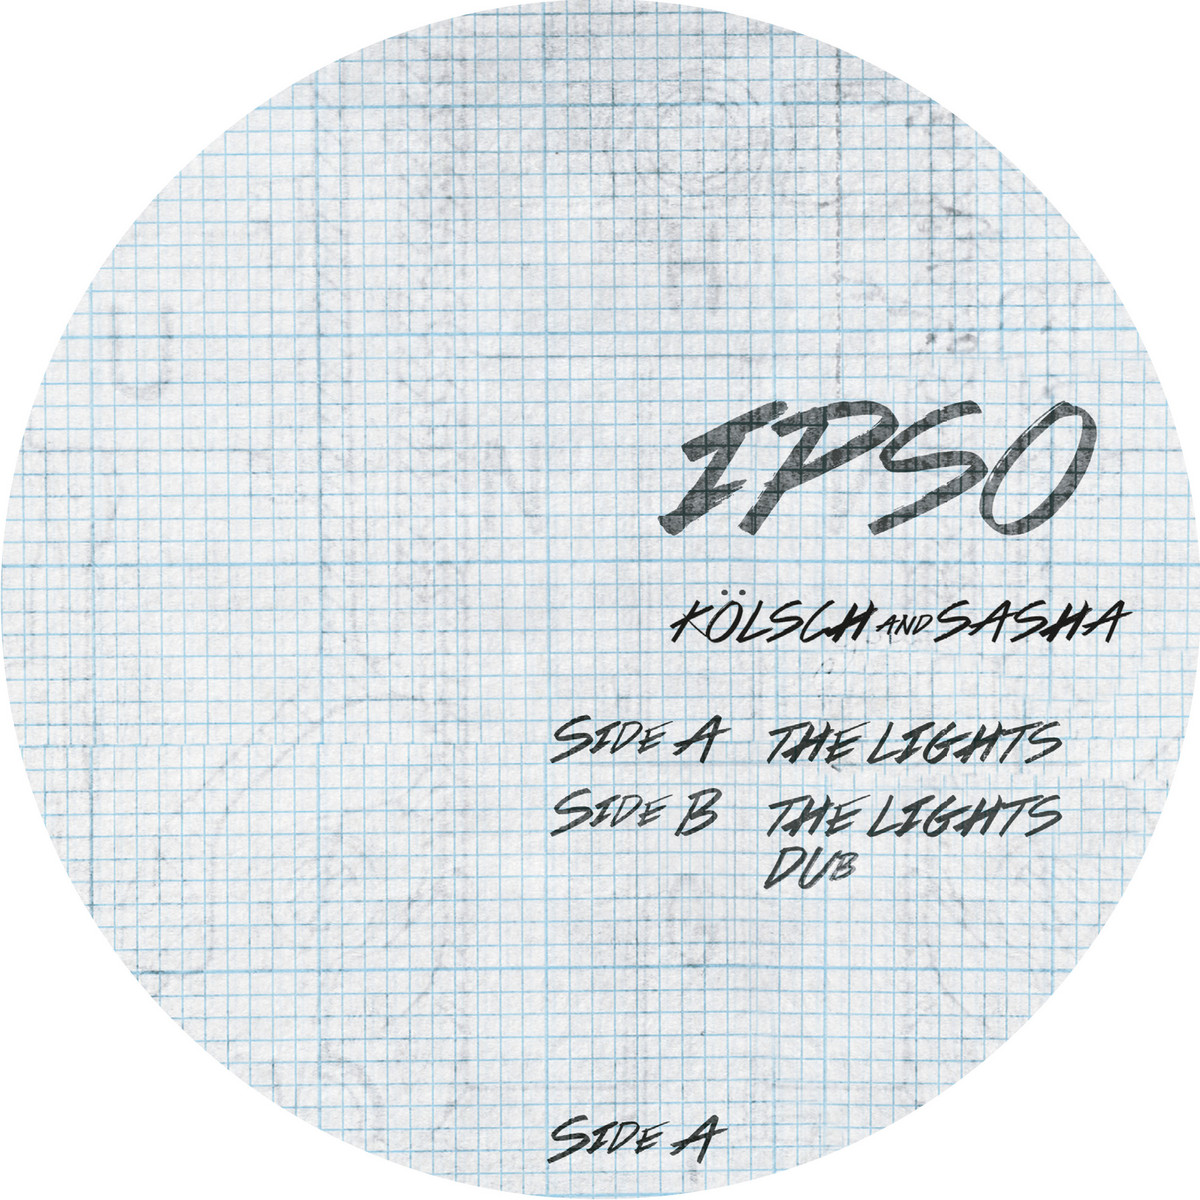 Kolsch & Sasha - The Lights [IPSO003]